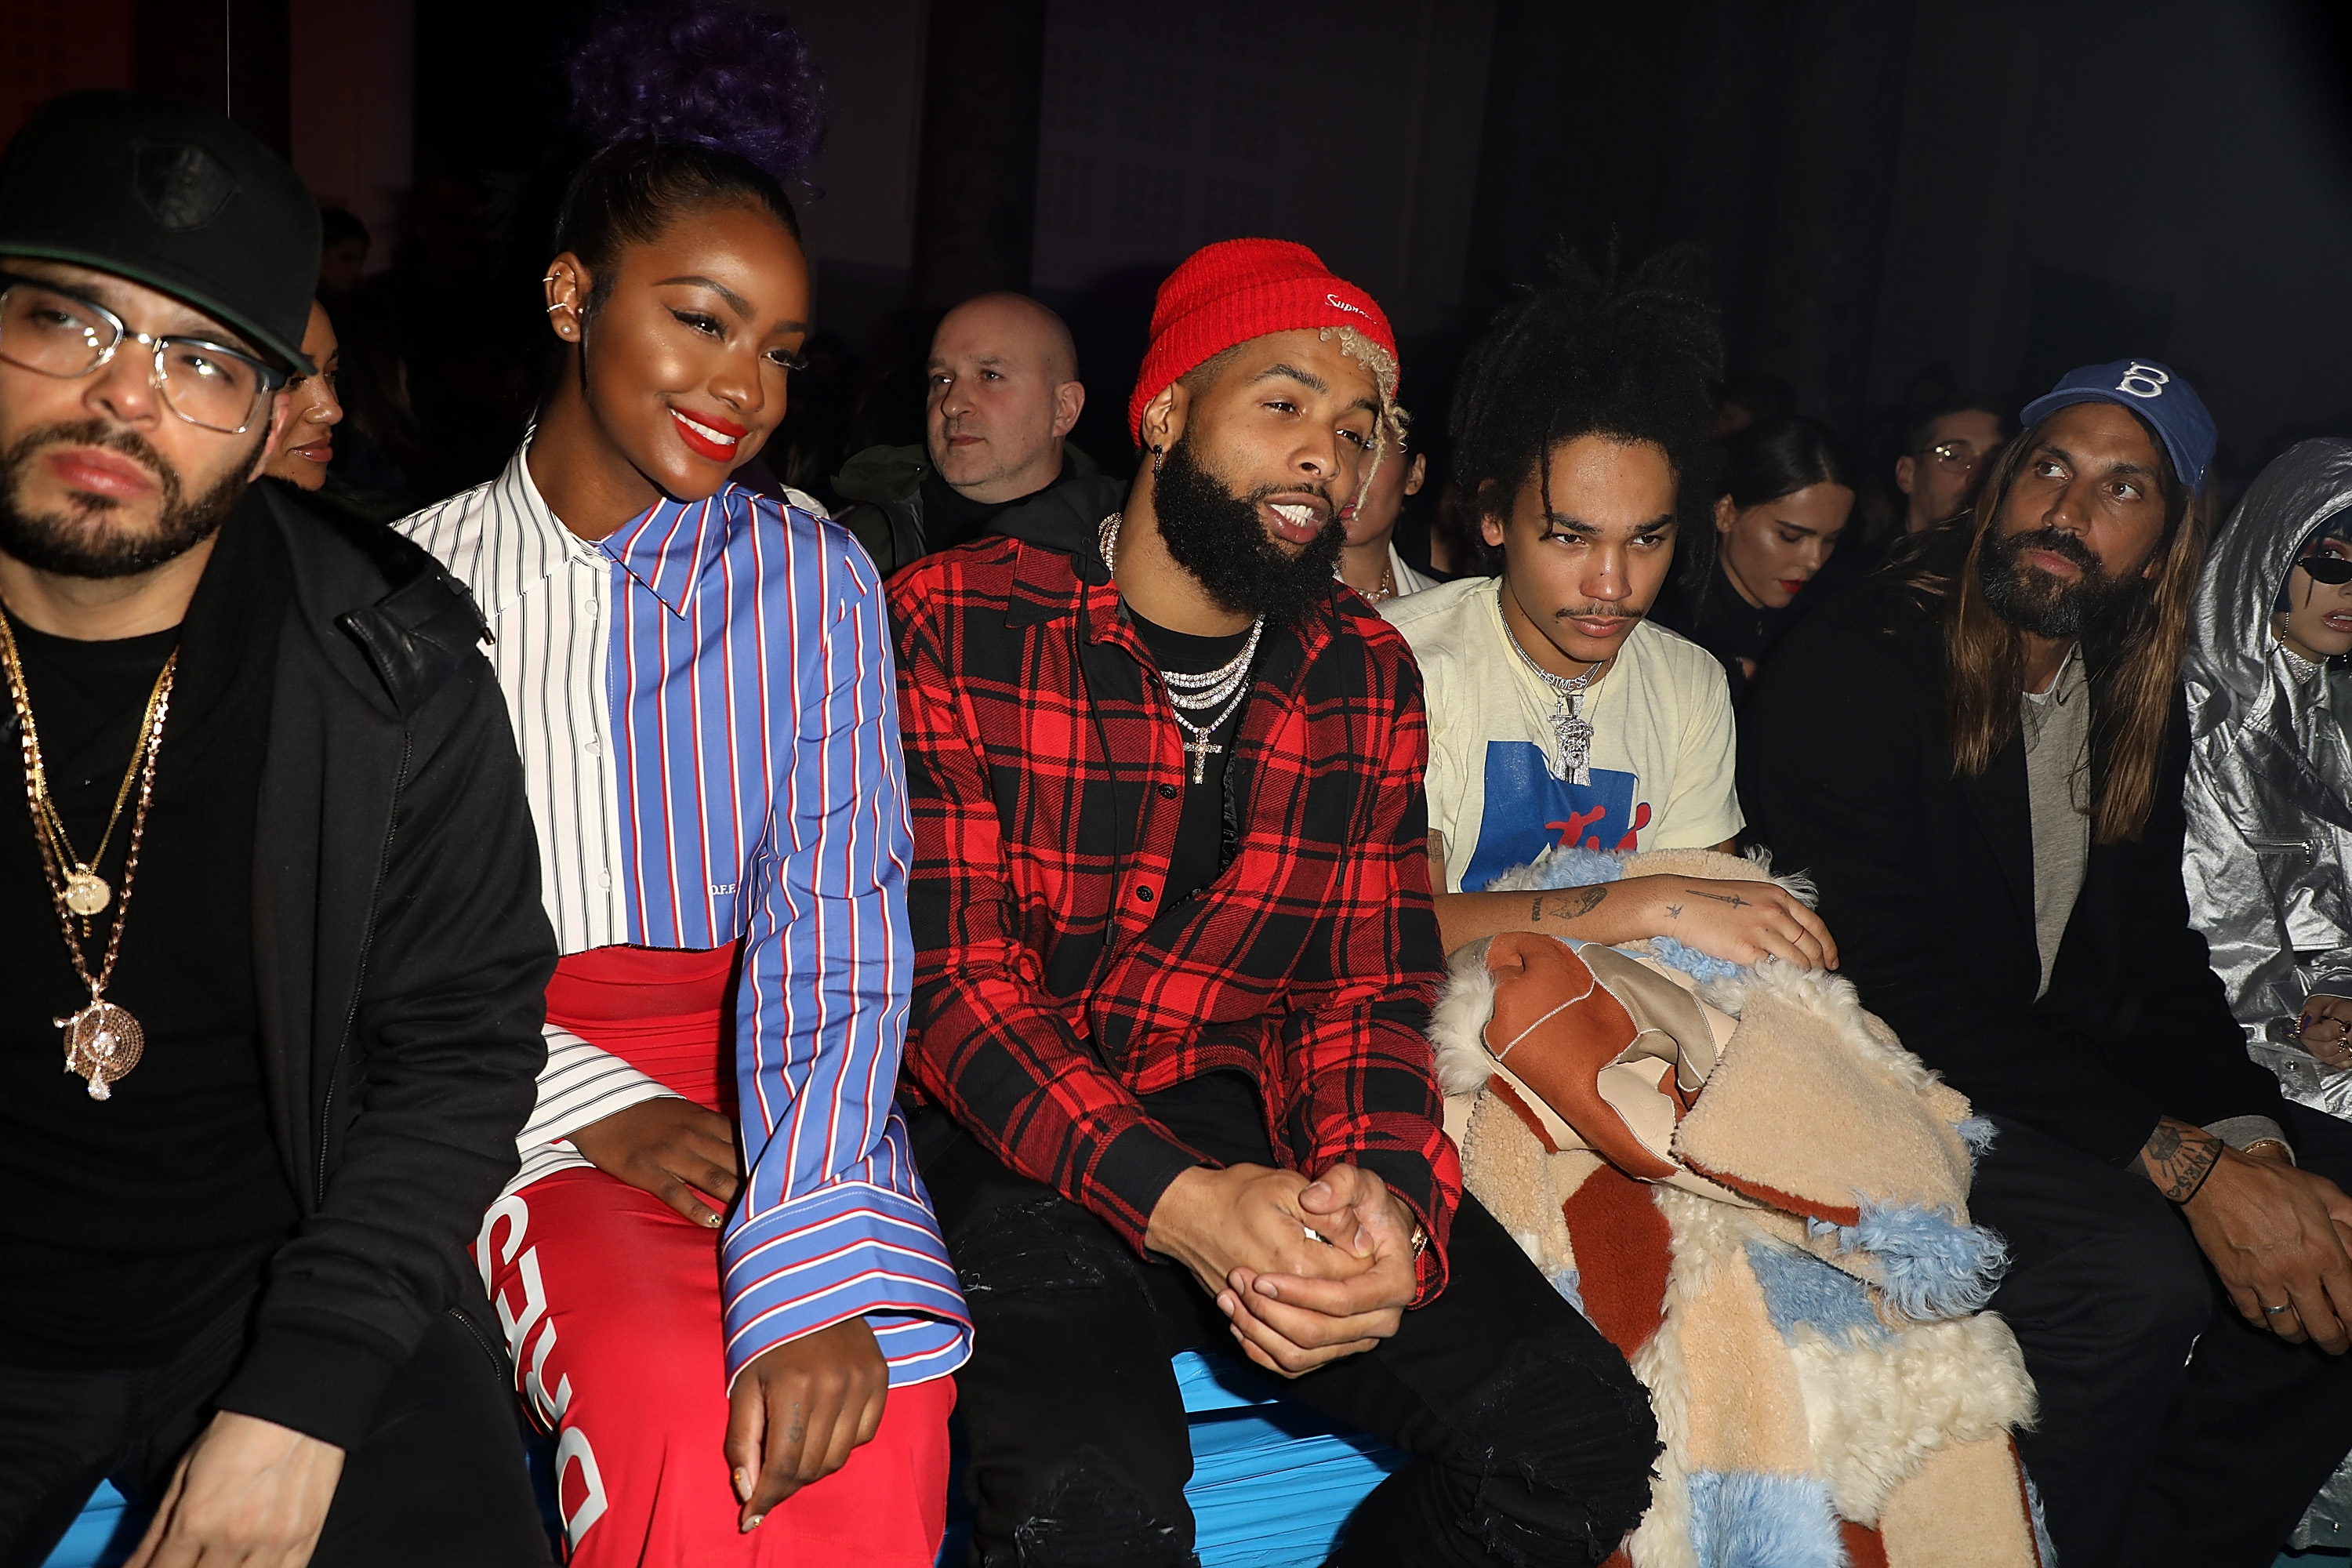 wholesale dealer d5619 c3d27 Odell Beckham, Jr. is the style icon the NFL needs - CNN Style